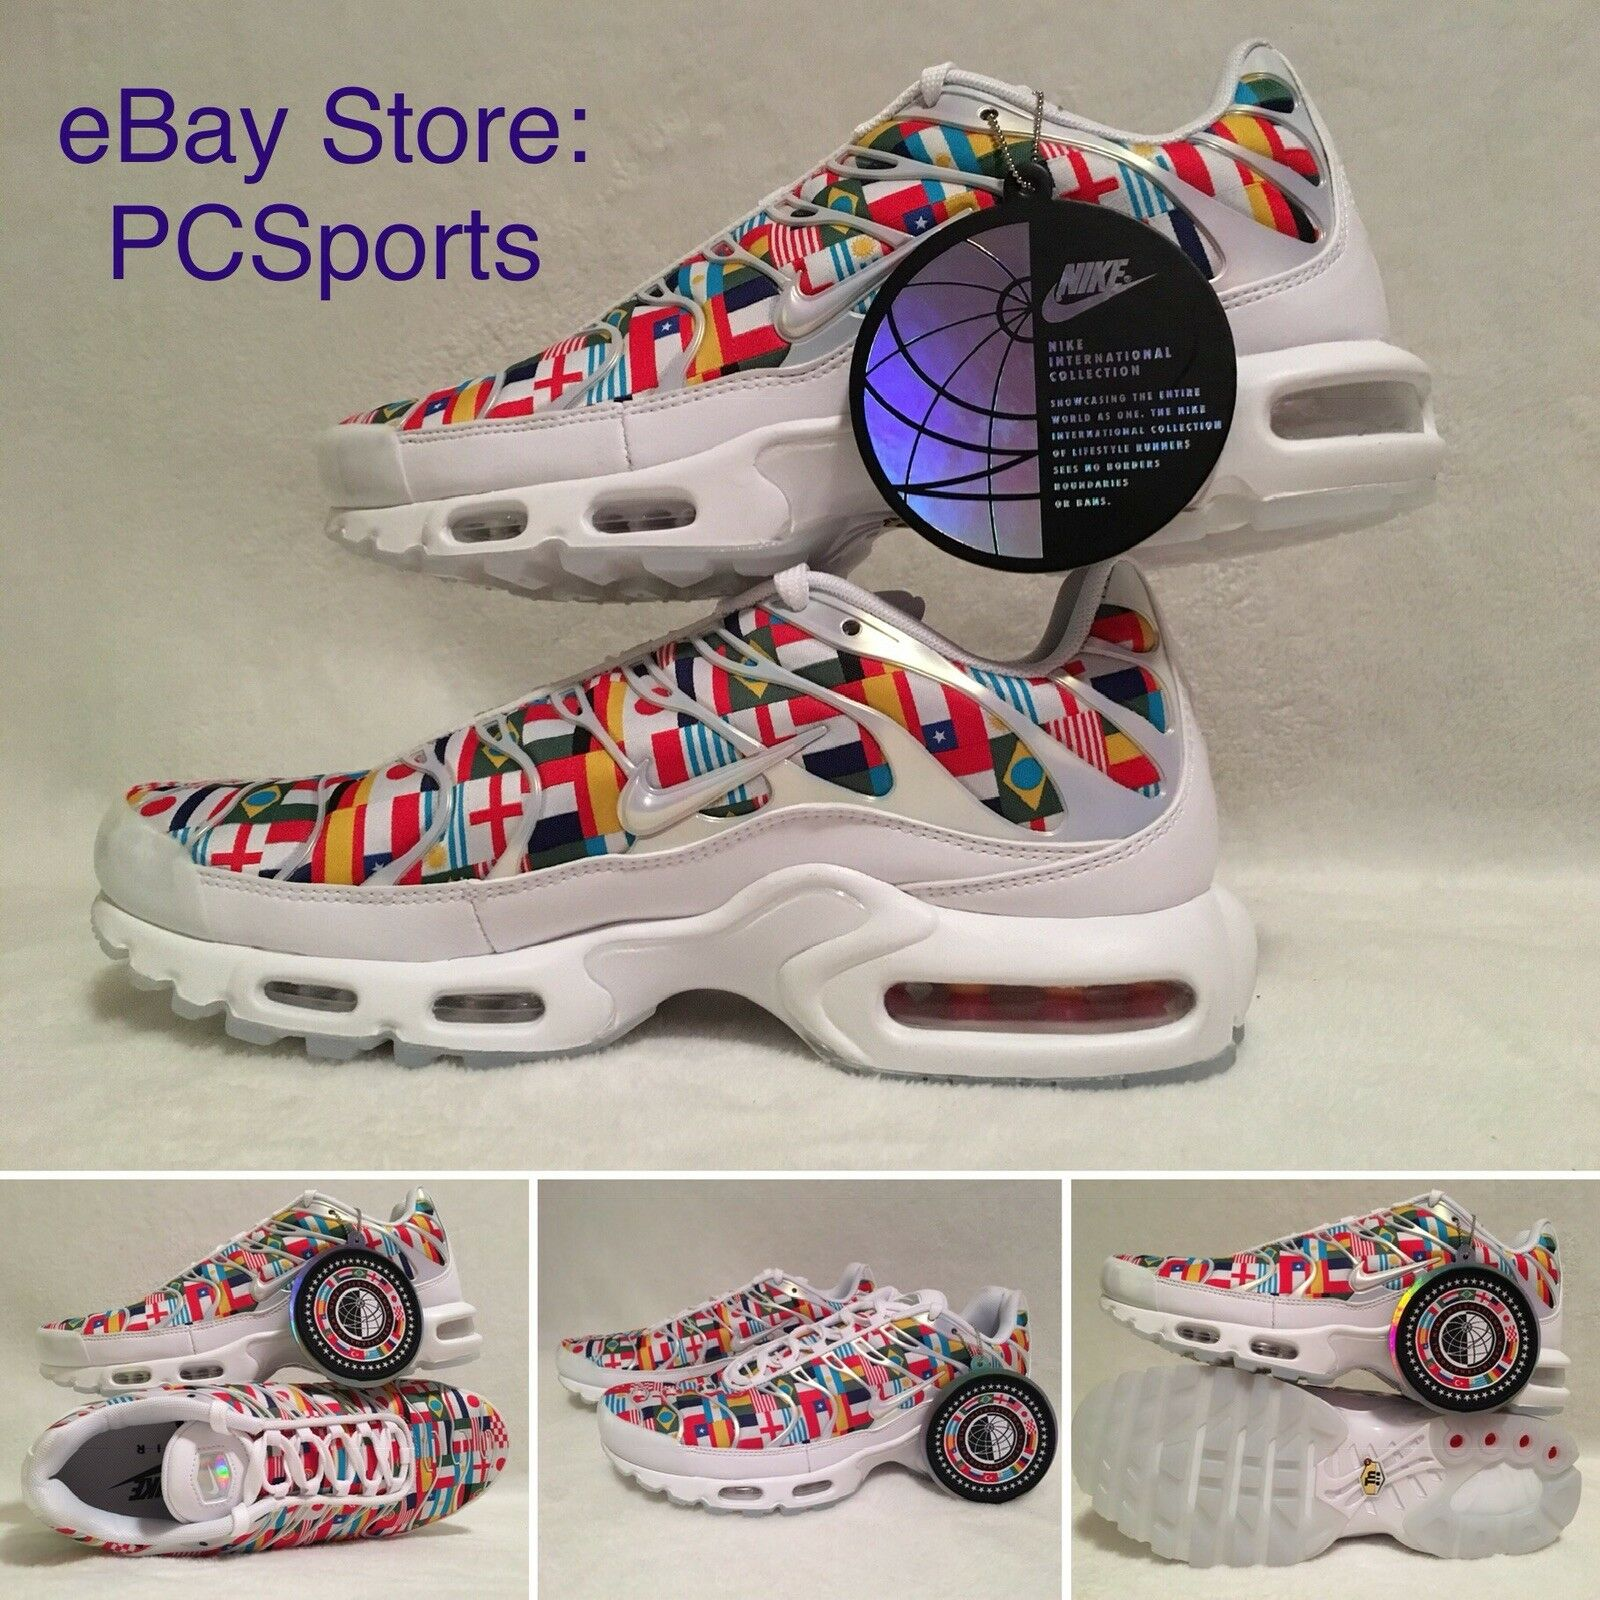 Men's Nike TN Air Max Plus International Running shoes AO5117-100 Size 9.5